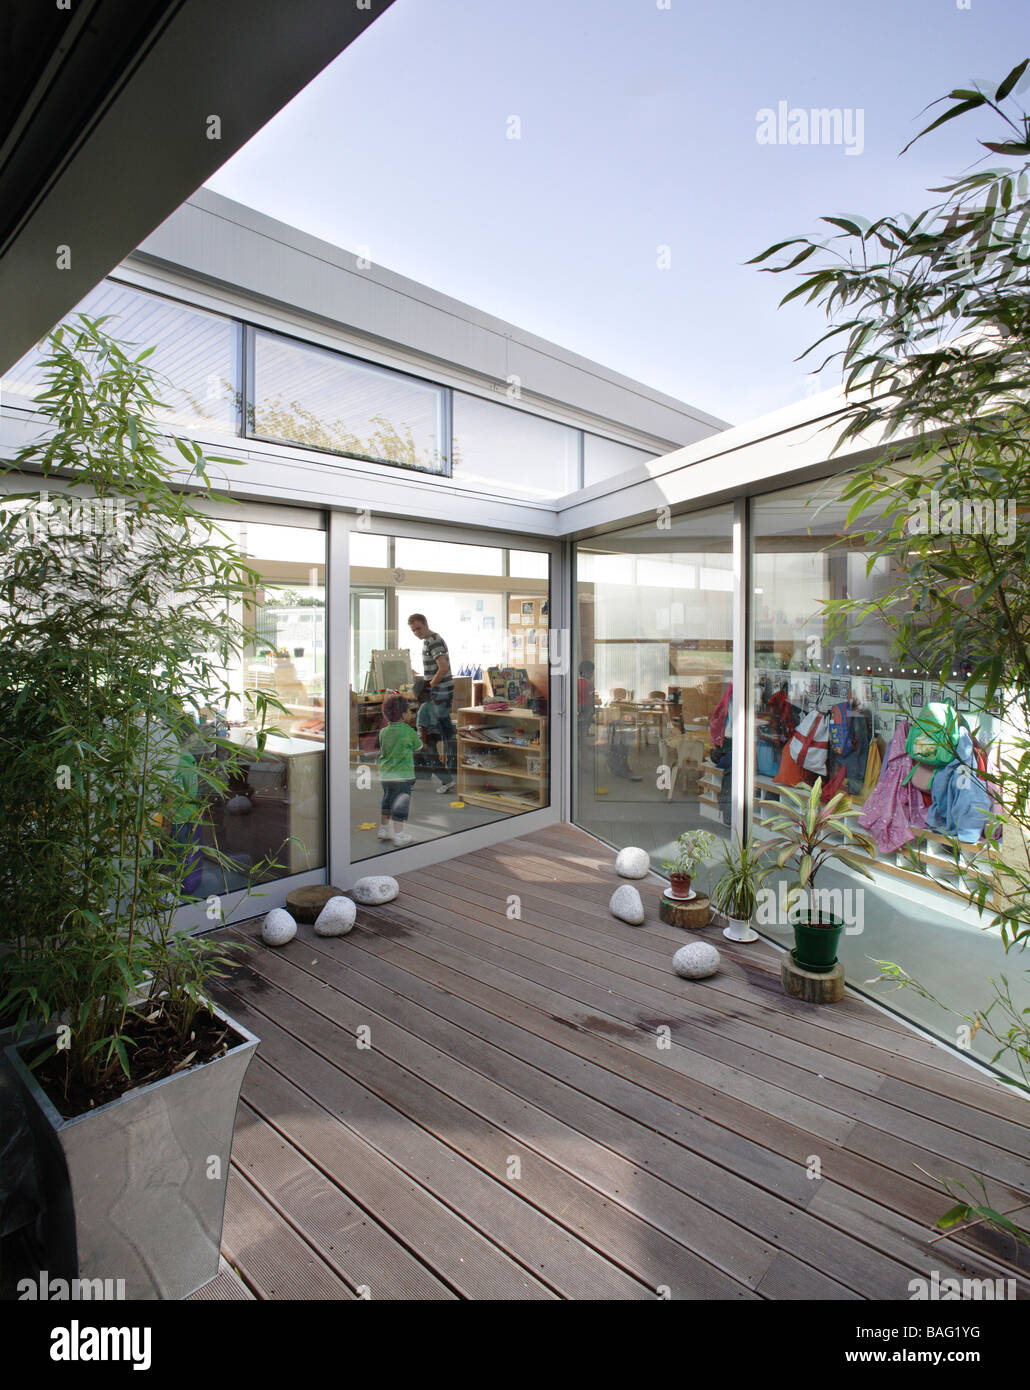 John Perry Chldrena€™s Centre and Nursery, London, United Kingdom, Dsdha Architects, John perry chldrena€™s centre - Stock Image